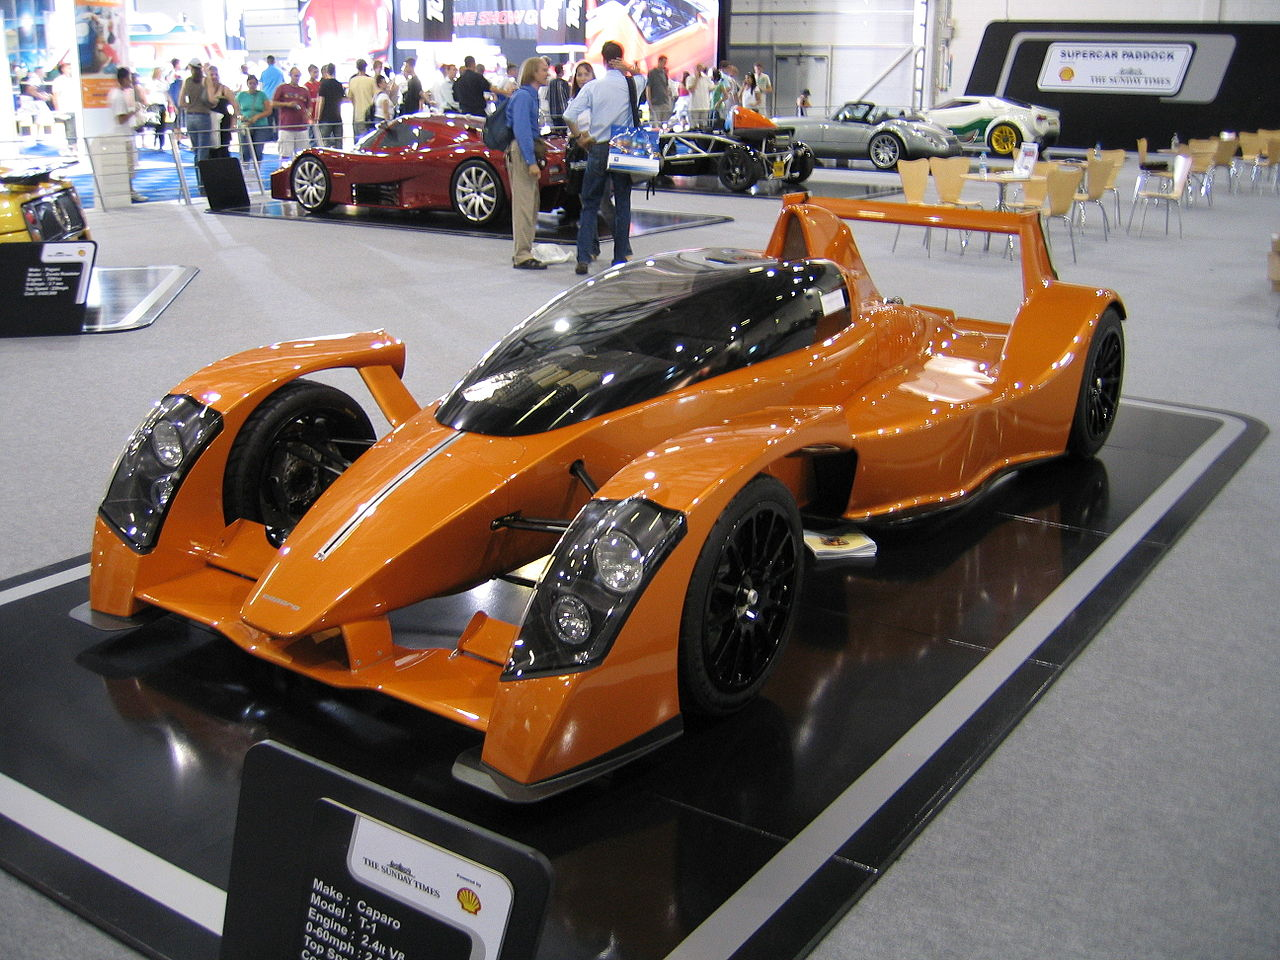 Single Seater Race Cars For Sale Uk